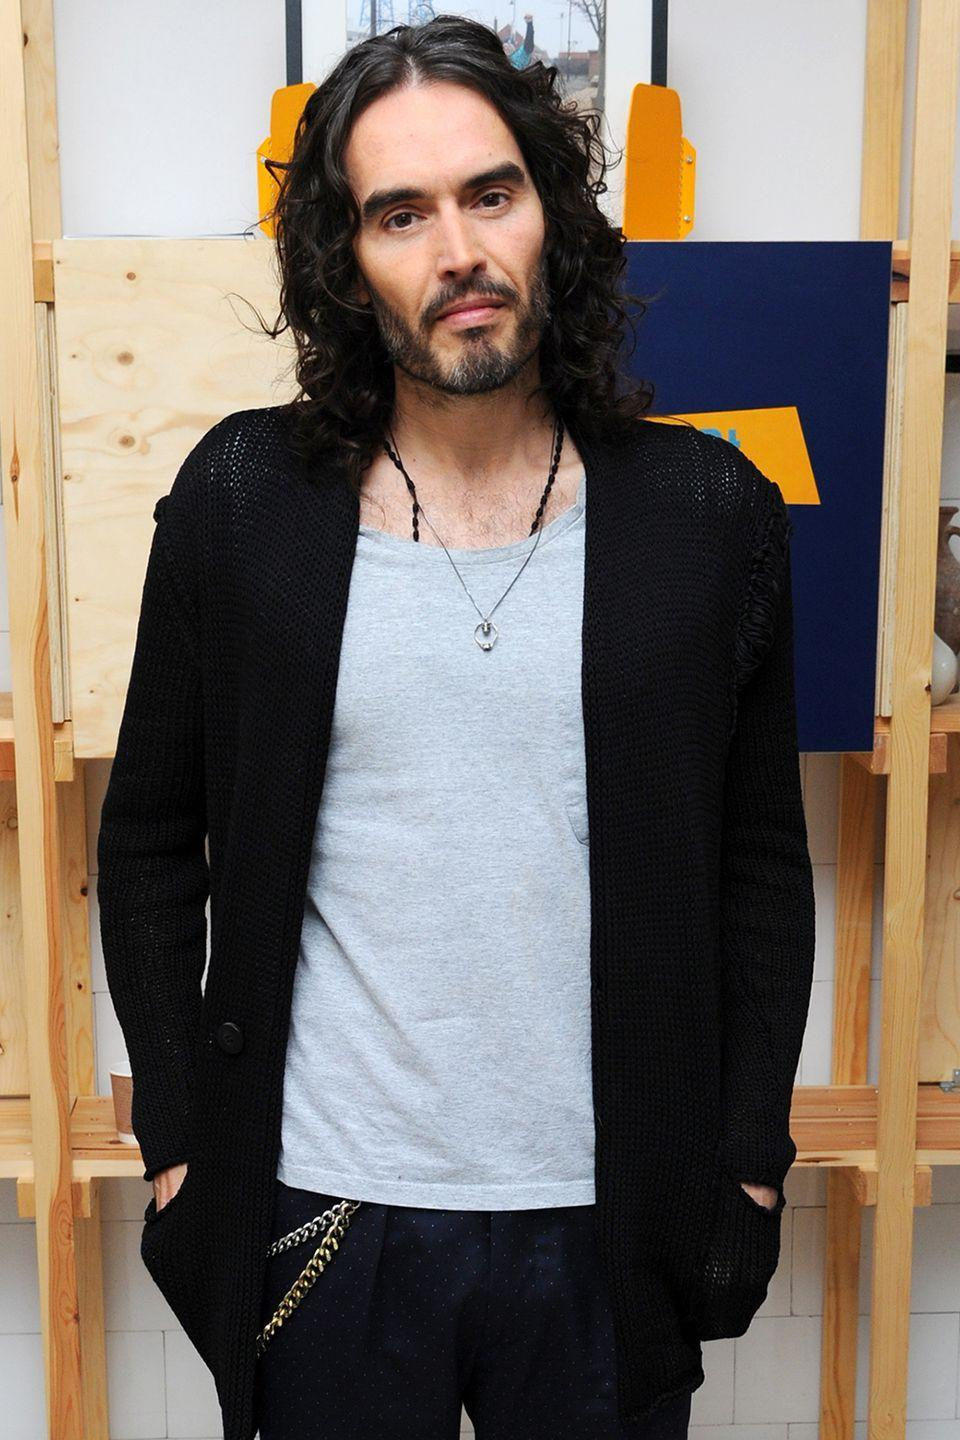 """<p>The English comedian and actor has been <a href=""""https://www.facebook.com/RussellBrand/posts/10151208588138177"""" rel=""""nofollow noopener"""" target=""""_blank"""" data-ylk=""""slk:publicly open"""" class=""""link rapid-noclick-resp"""">publicly open</a> about his addictions for quite some time now, celebrating 14 years of sobriety at this point. Now he sets out to help others who have also faced the same struggles in his book <a href=""""http://read.macmillan.com/lp/recovery-russell-brand/"""" rel=""""nofollow noopener"""" target=""""_blank"""" data-ylk=""""slk:Recovery: Freedom from our Addictions"""" class=""""link rapid-noclick-resp"""">Recovery: Freedom from our Addictions</a>. </p>"""